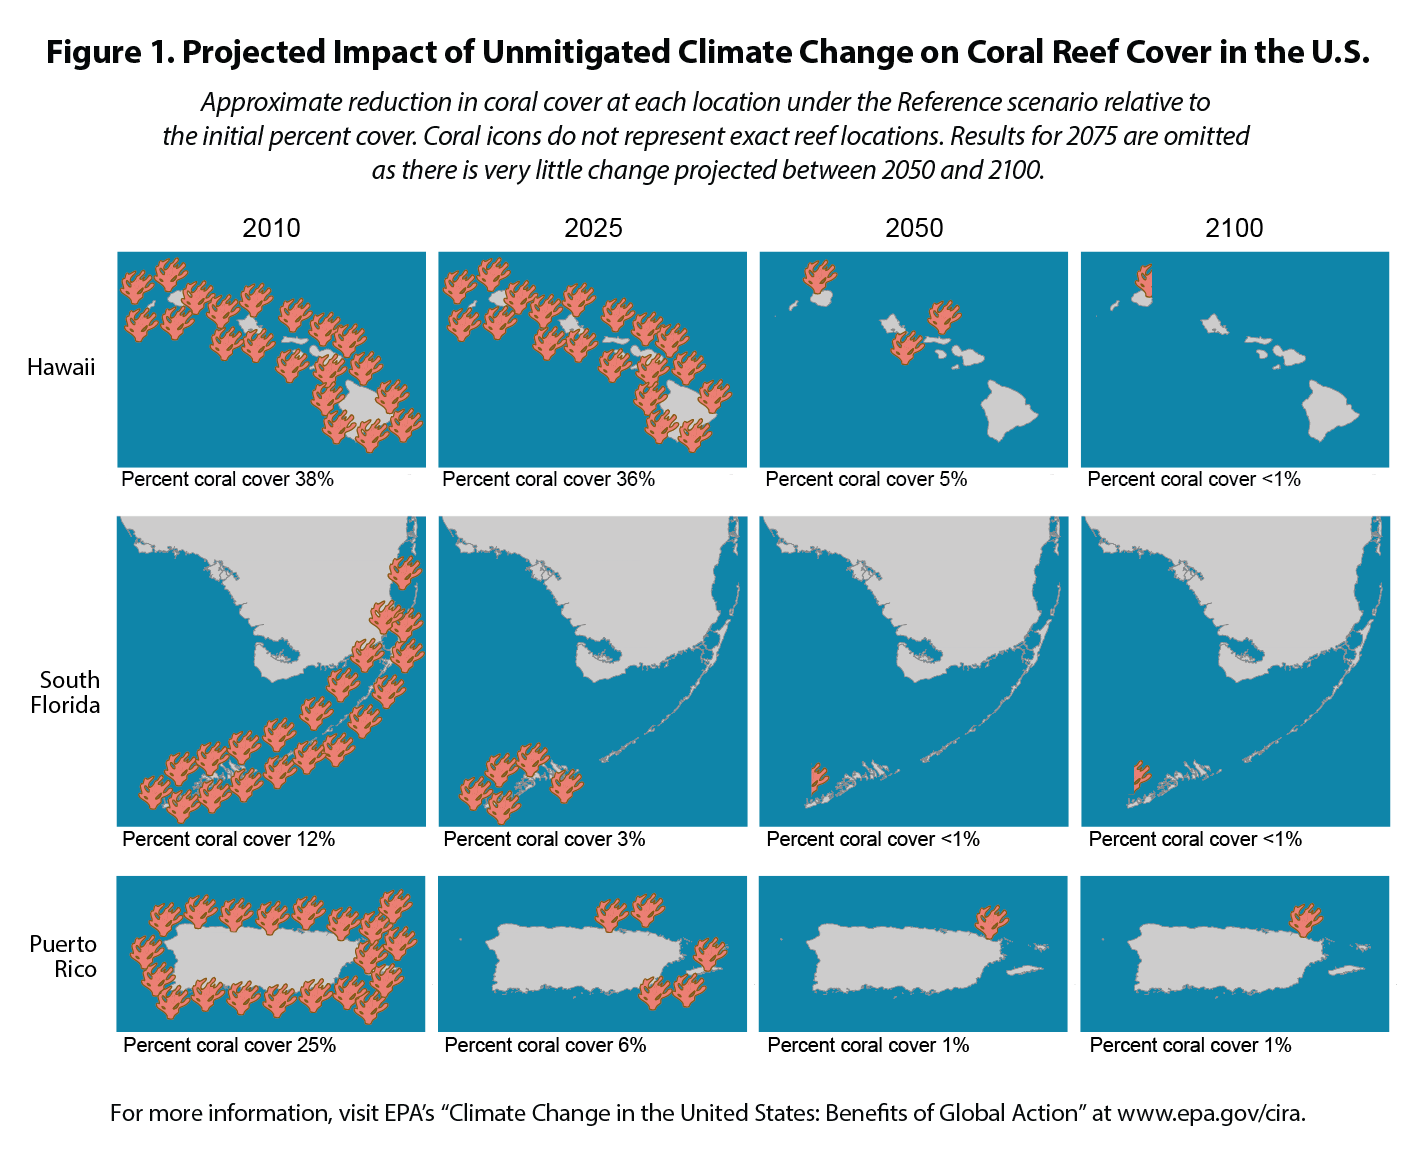 Climate Change Impacts on Coral Reefs